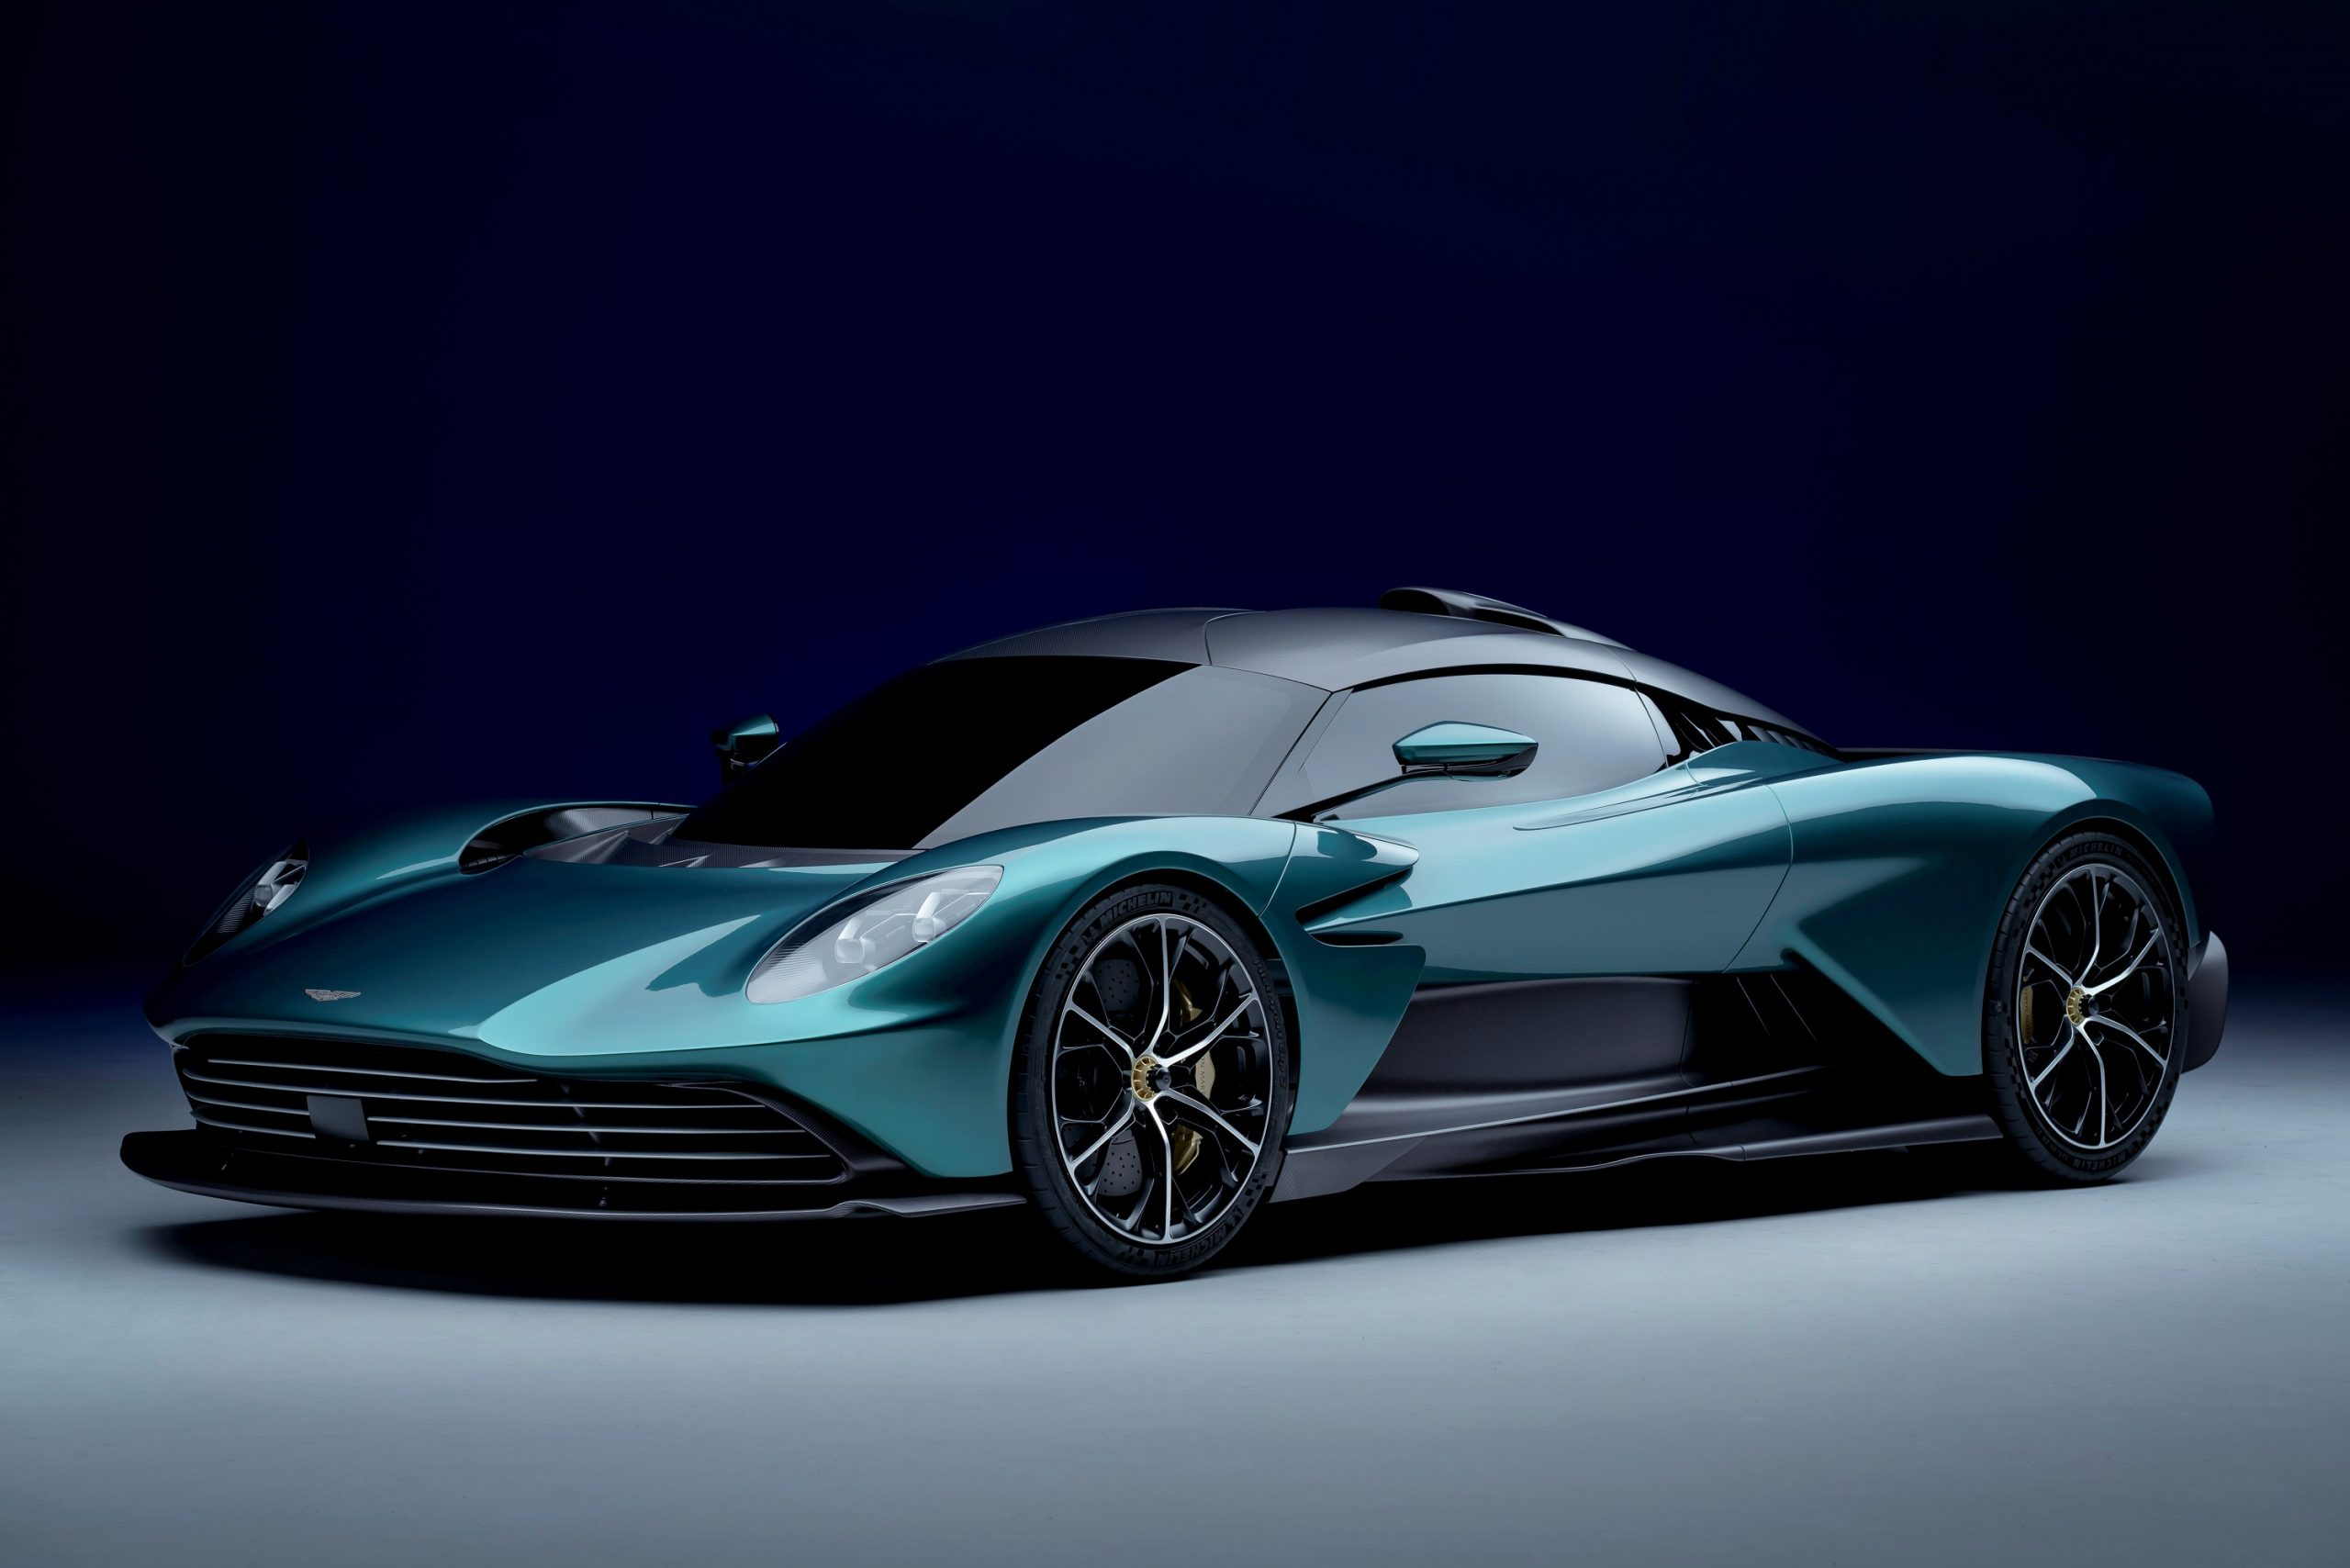 A green Aston Martin Valhalla shot from the front 3/4 angle in a studio